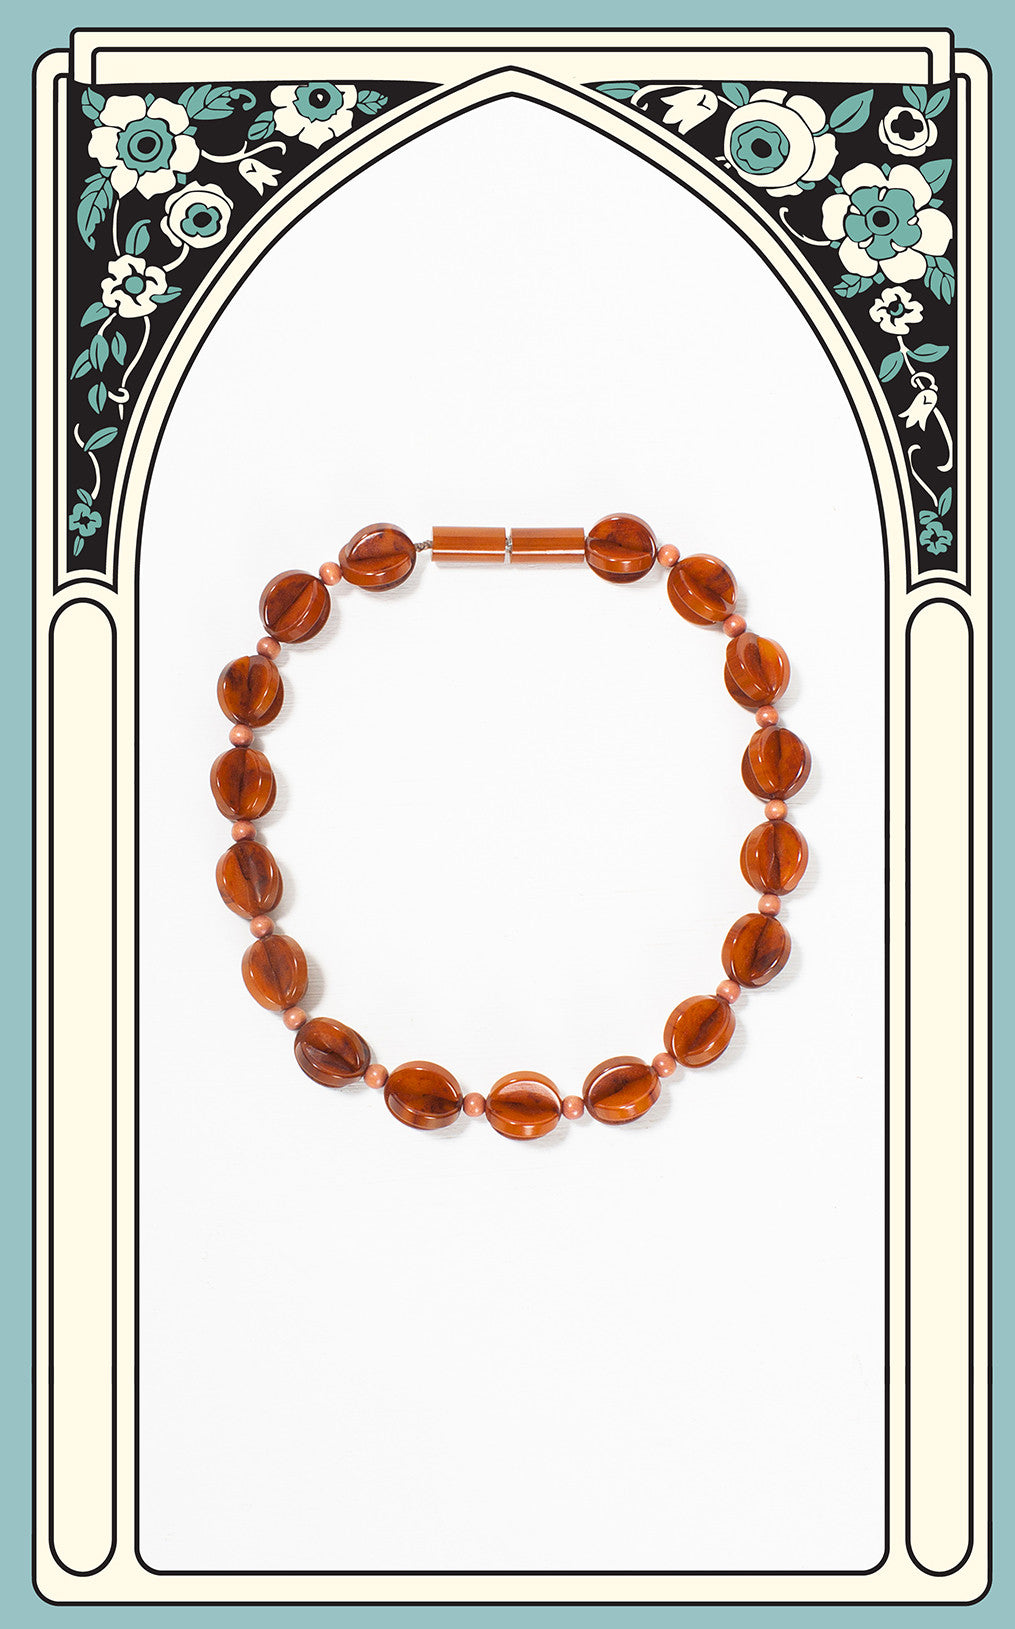 1930s Art Deco Geometric Marbled Rust Bakelite & Wood Choker